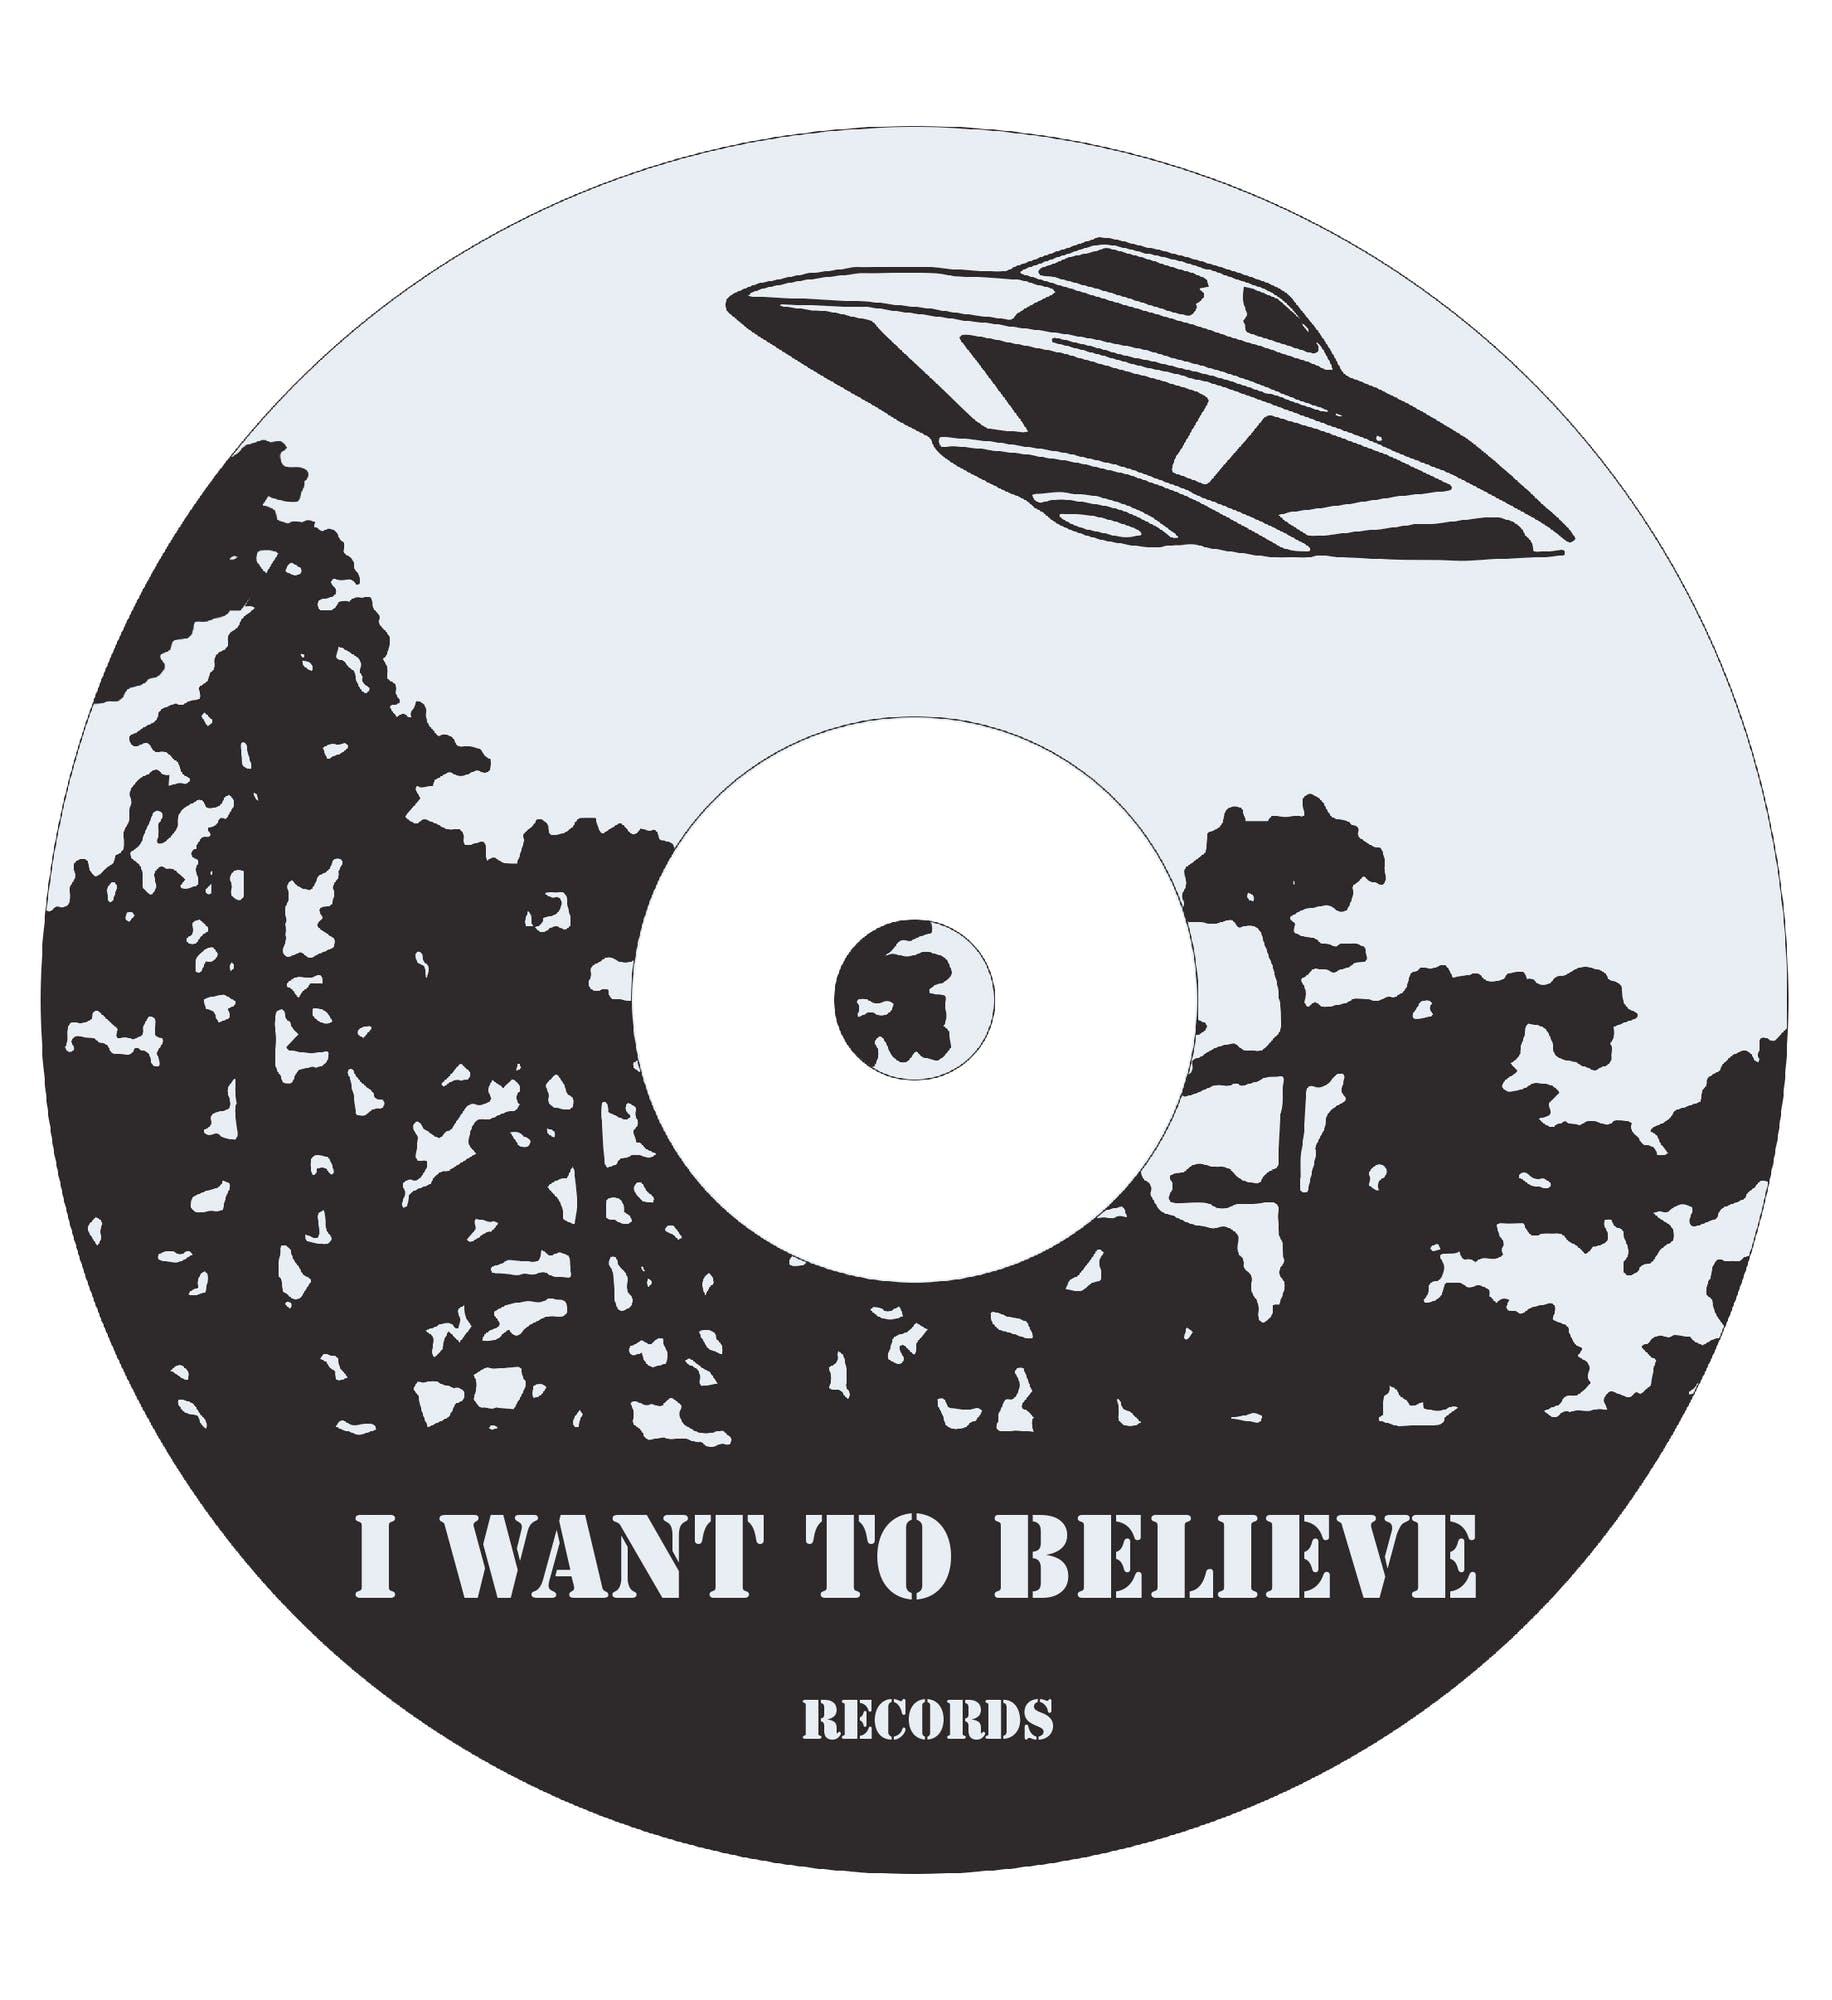 I Want To Believe Records - Record Store Image